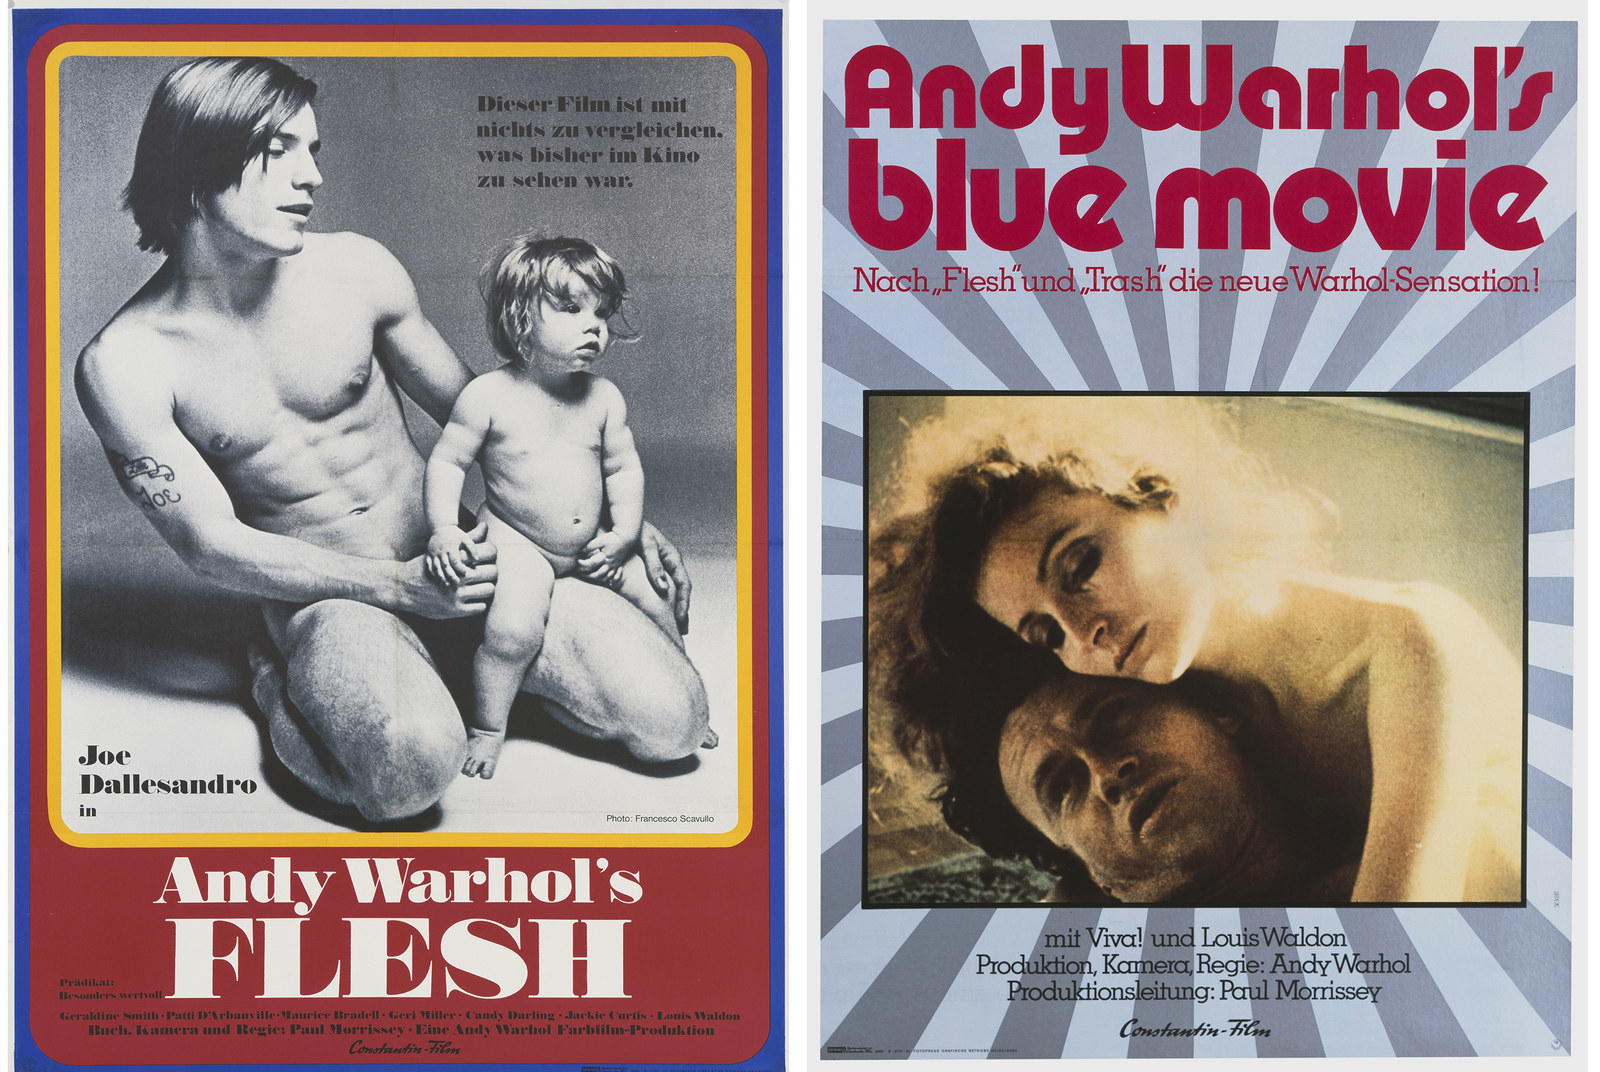 Left: A poster for the German release of Paul Morrissey's 1969 film Andy Warhol's Flesh. Right: A poster for the German release of Andy Warhol's 1969 film Blue Movie.